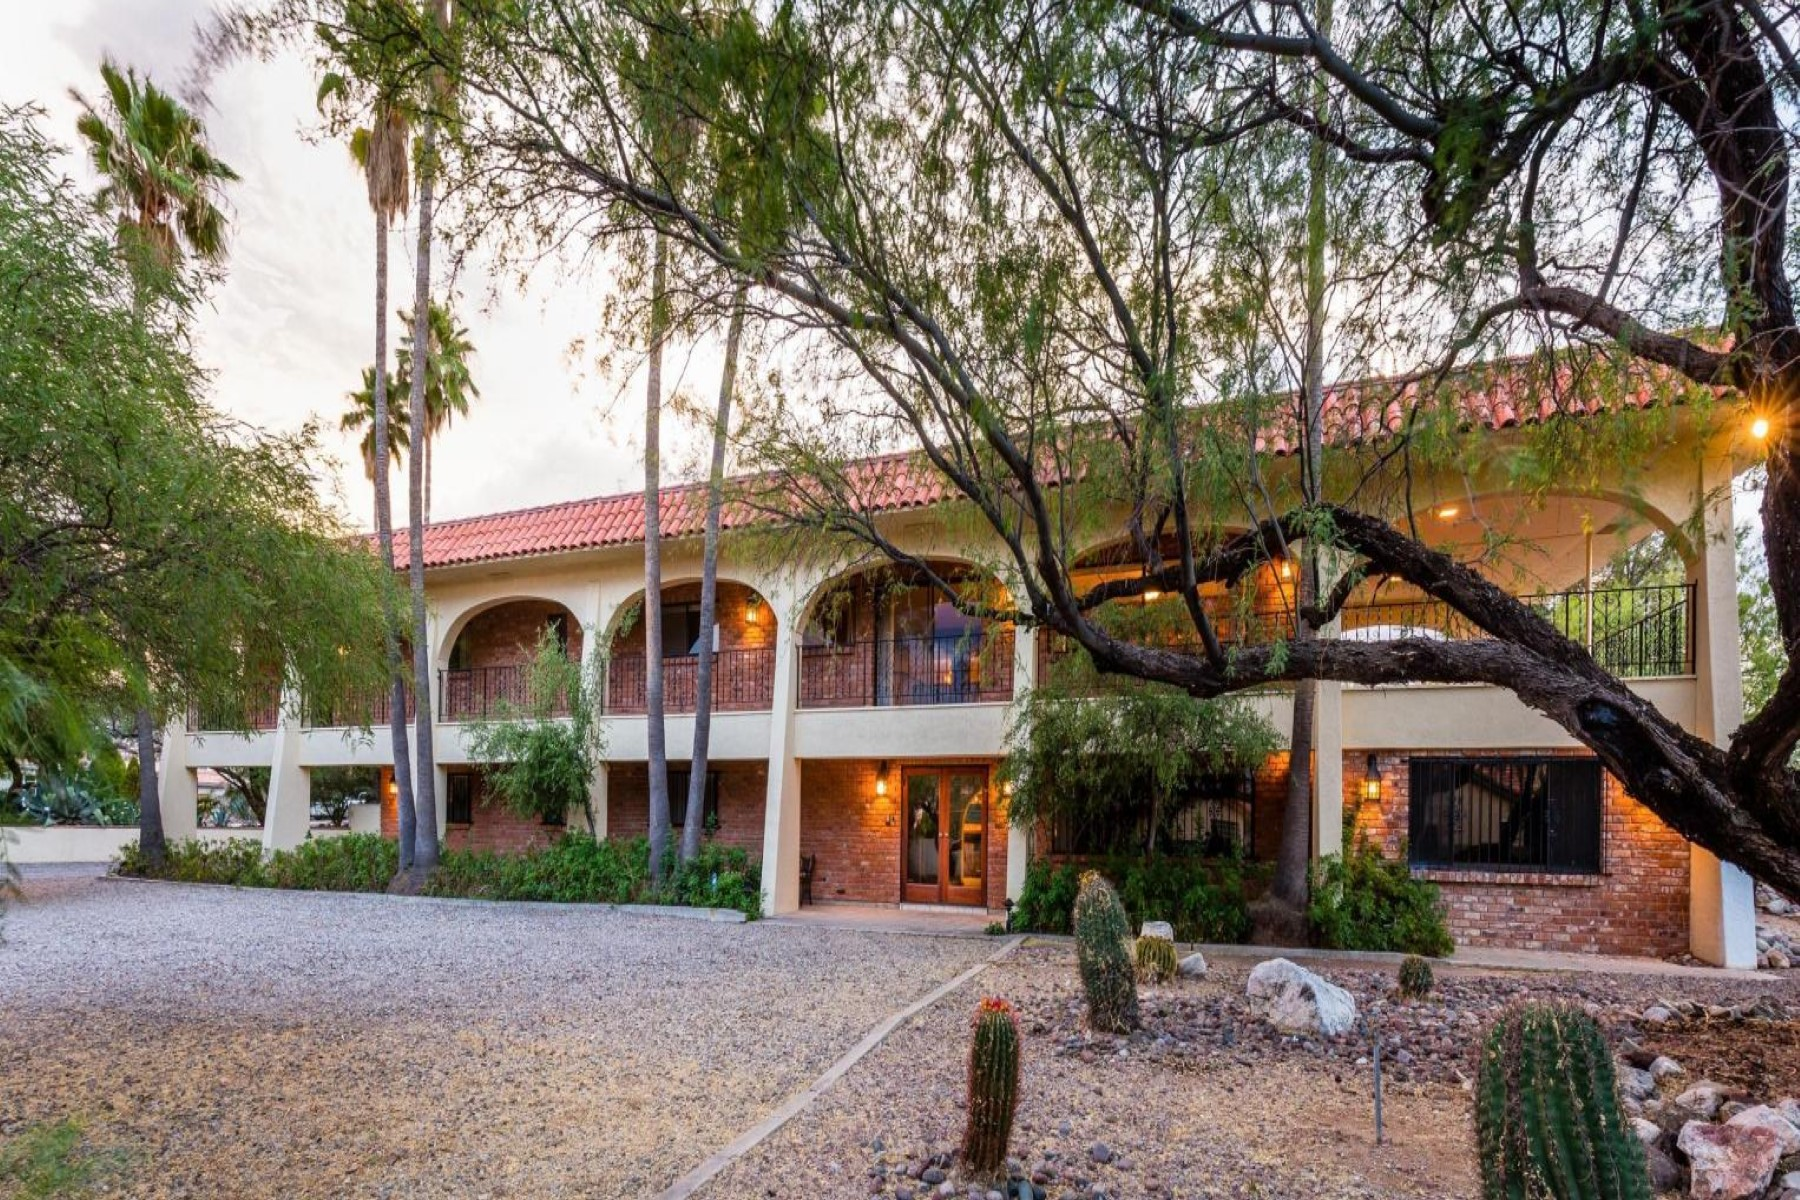 Casa Unifamiliar por un Venta en Private gated compound on nearly 3 acres providing a secluded feel 260 S Sewell Place Tucson, Arizona, 85748 Estados Unidos